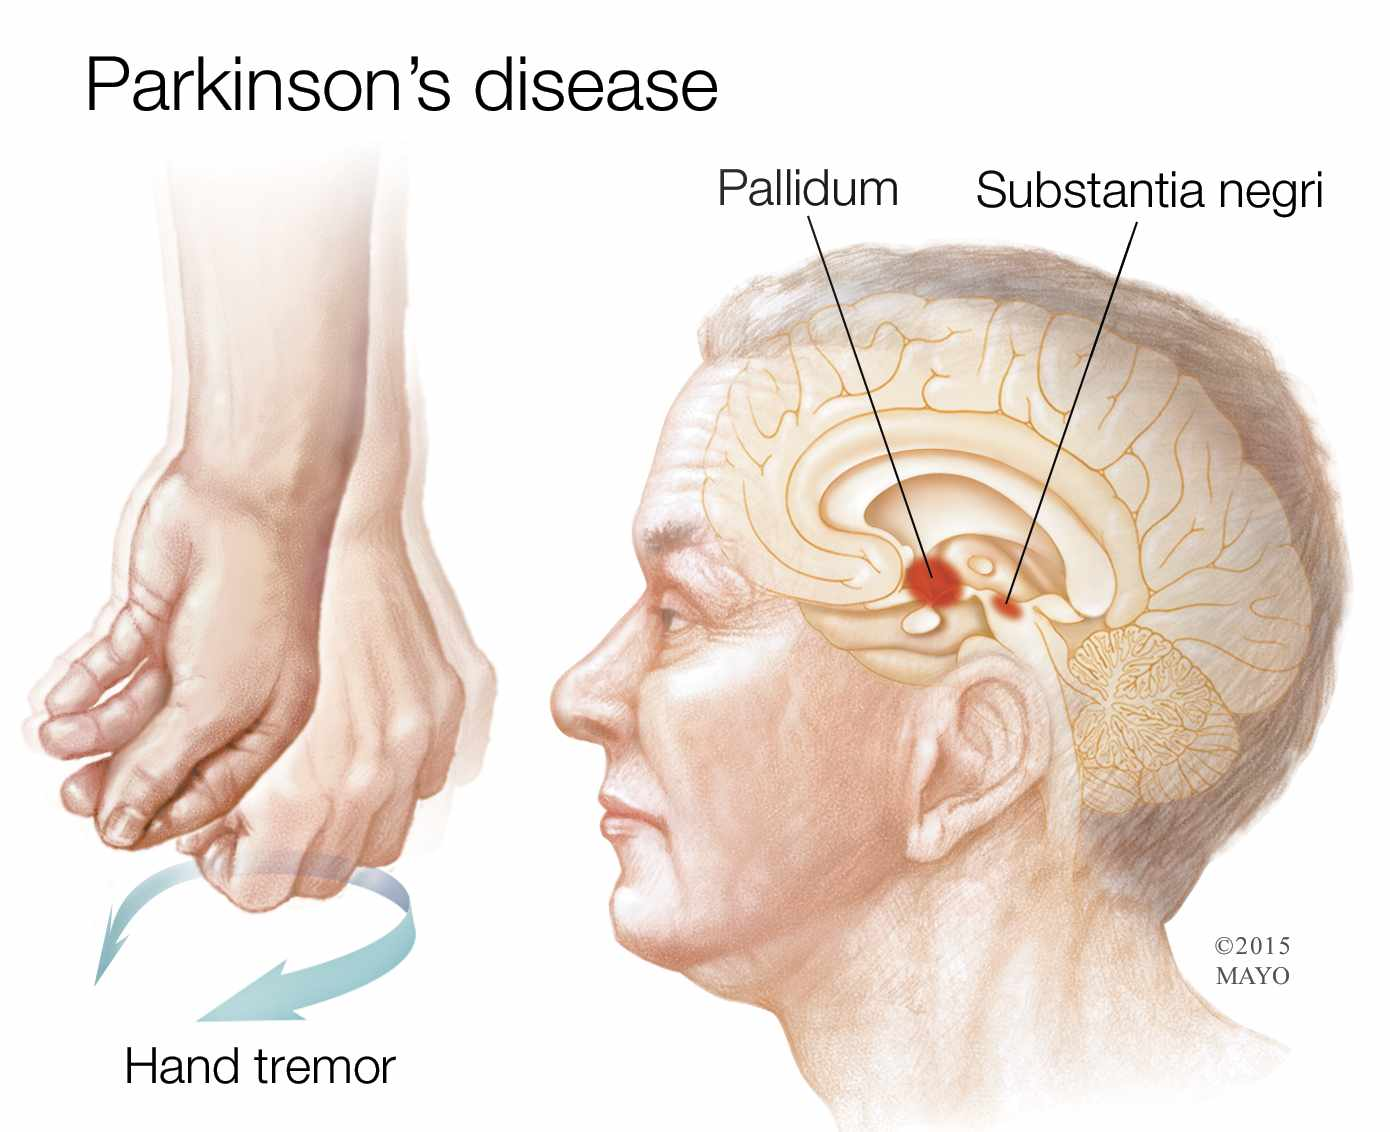 medical illustration showing hand tremor due to Parkinson's Disease